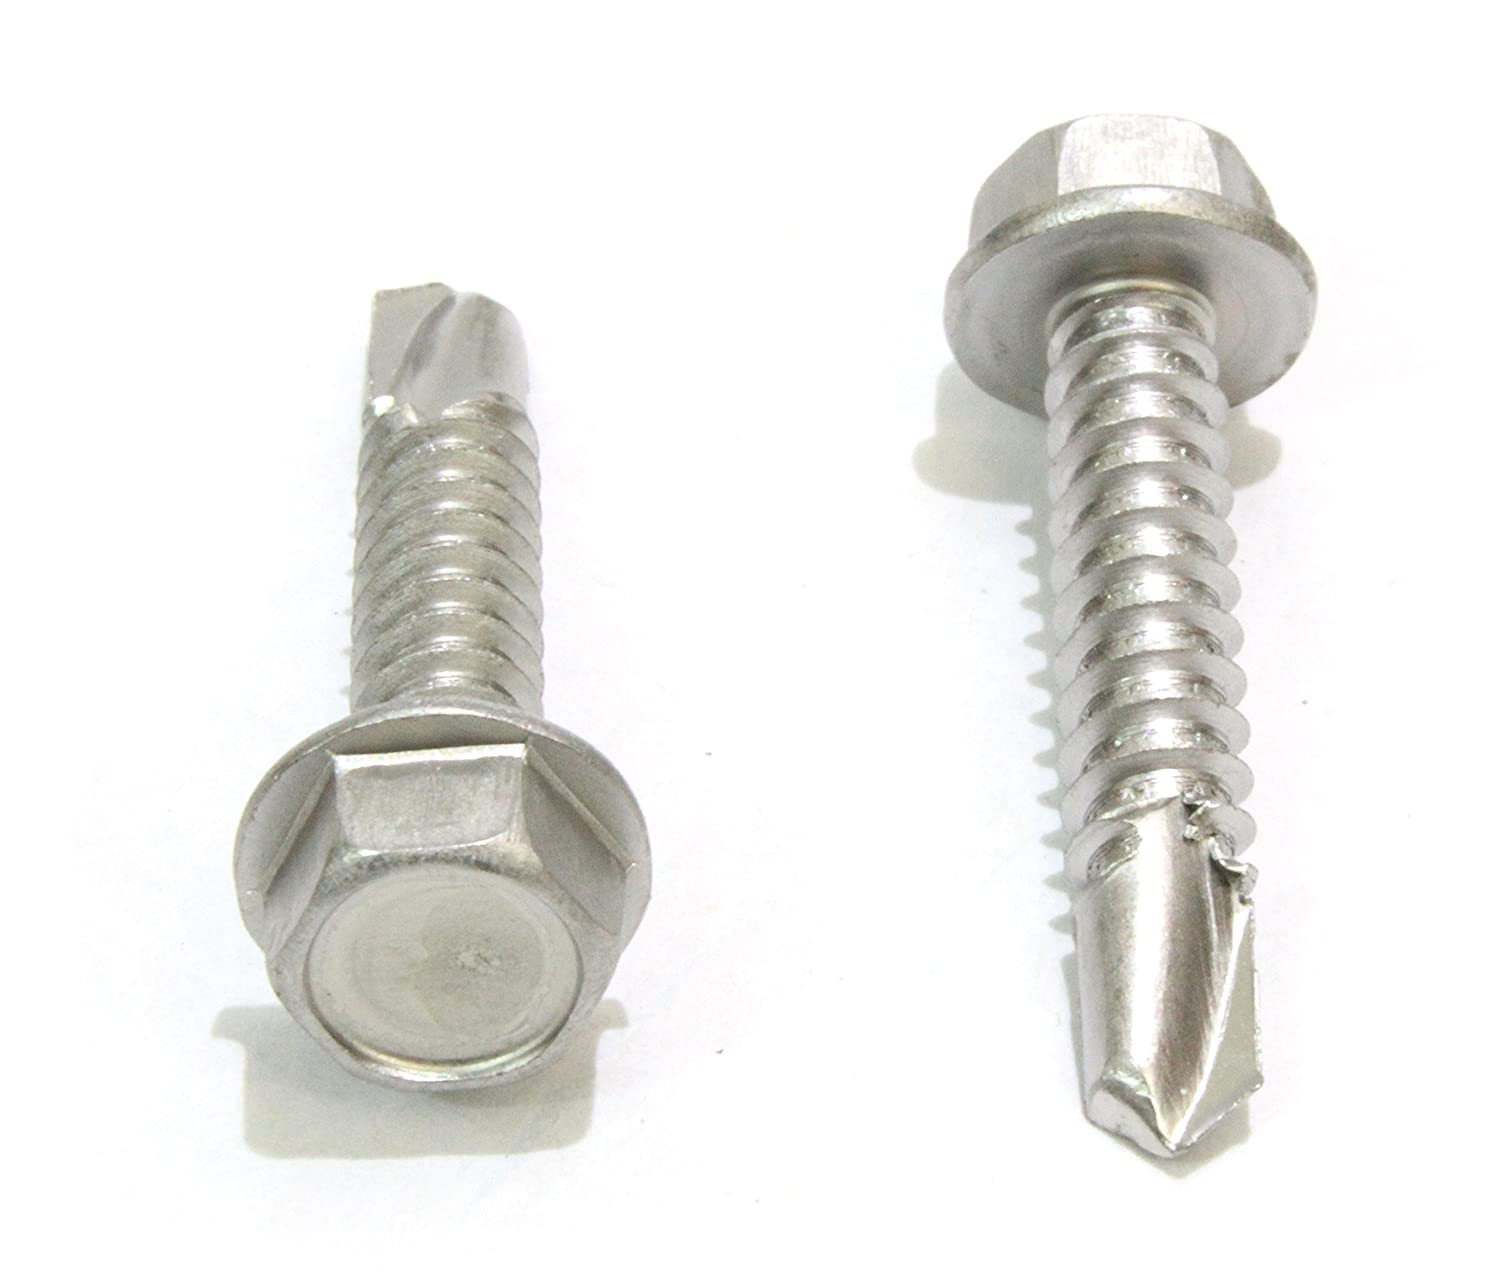 """#10 X 1-1/4\"""" Stainless Hex Washer Head selbst Drilling Screws, (100Pc) 410 Stainless Steel selbst Tapping Choose Size und Qty"""